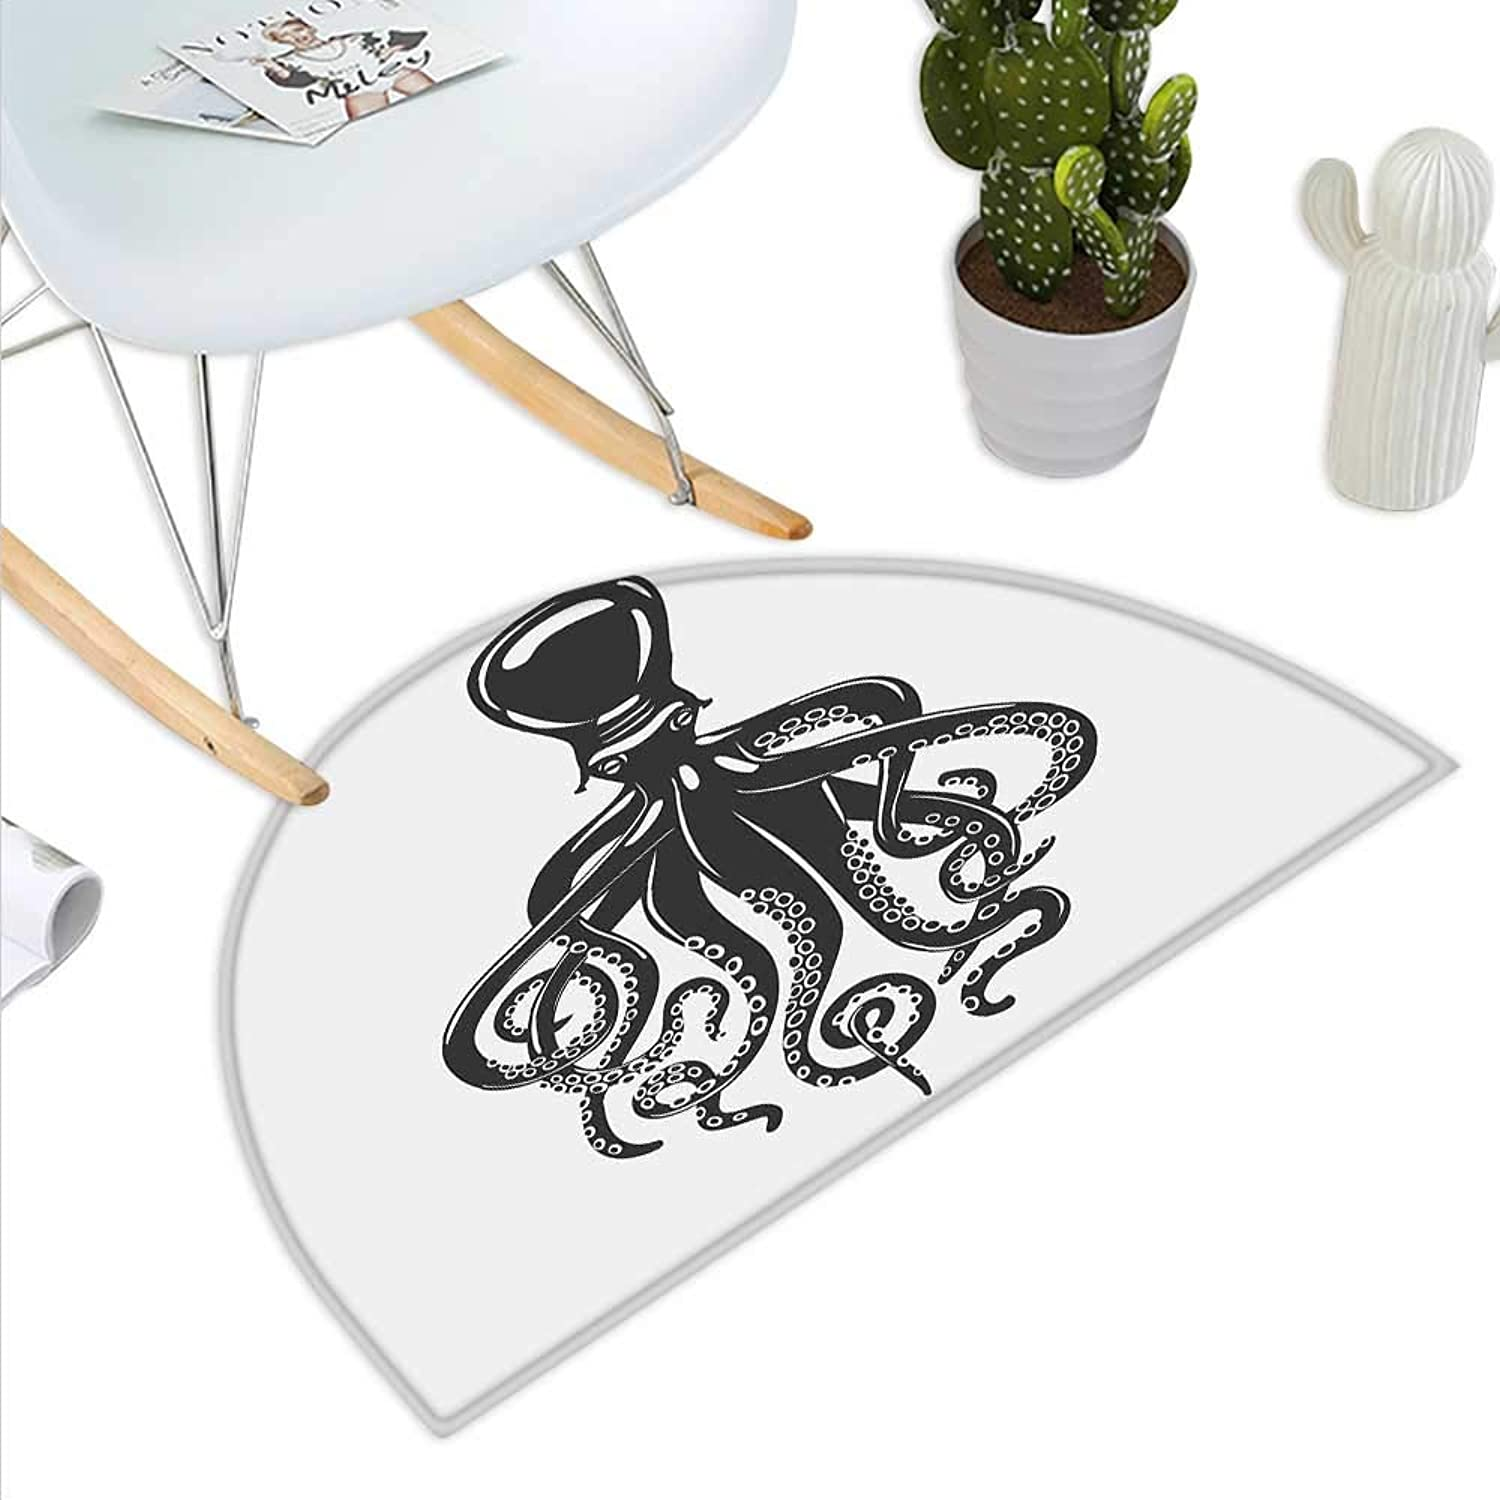 Octopus Semicircle Doormat Animal with Contemporary Design Nautical Aquatic Character Illustration Halfmoon doormats H 39.3  xD 59  Charcoal Grey White